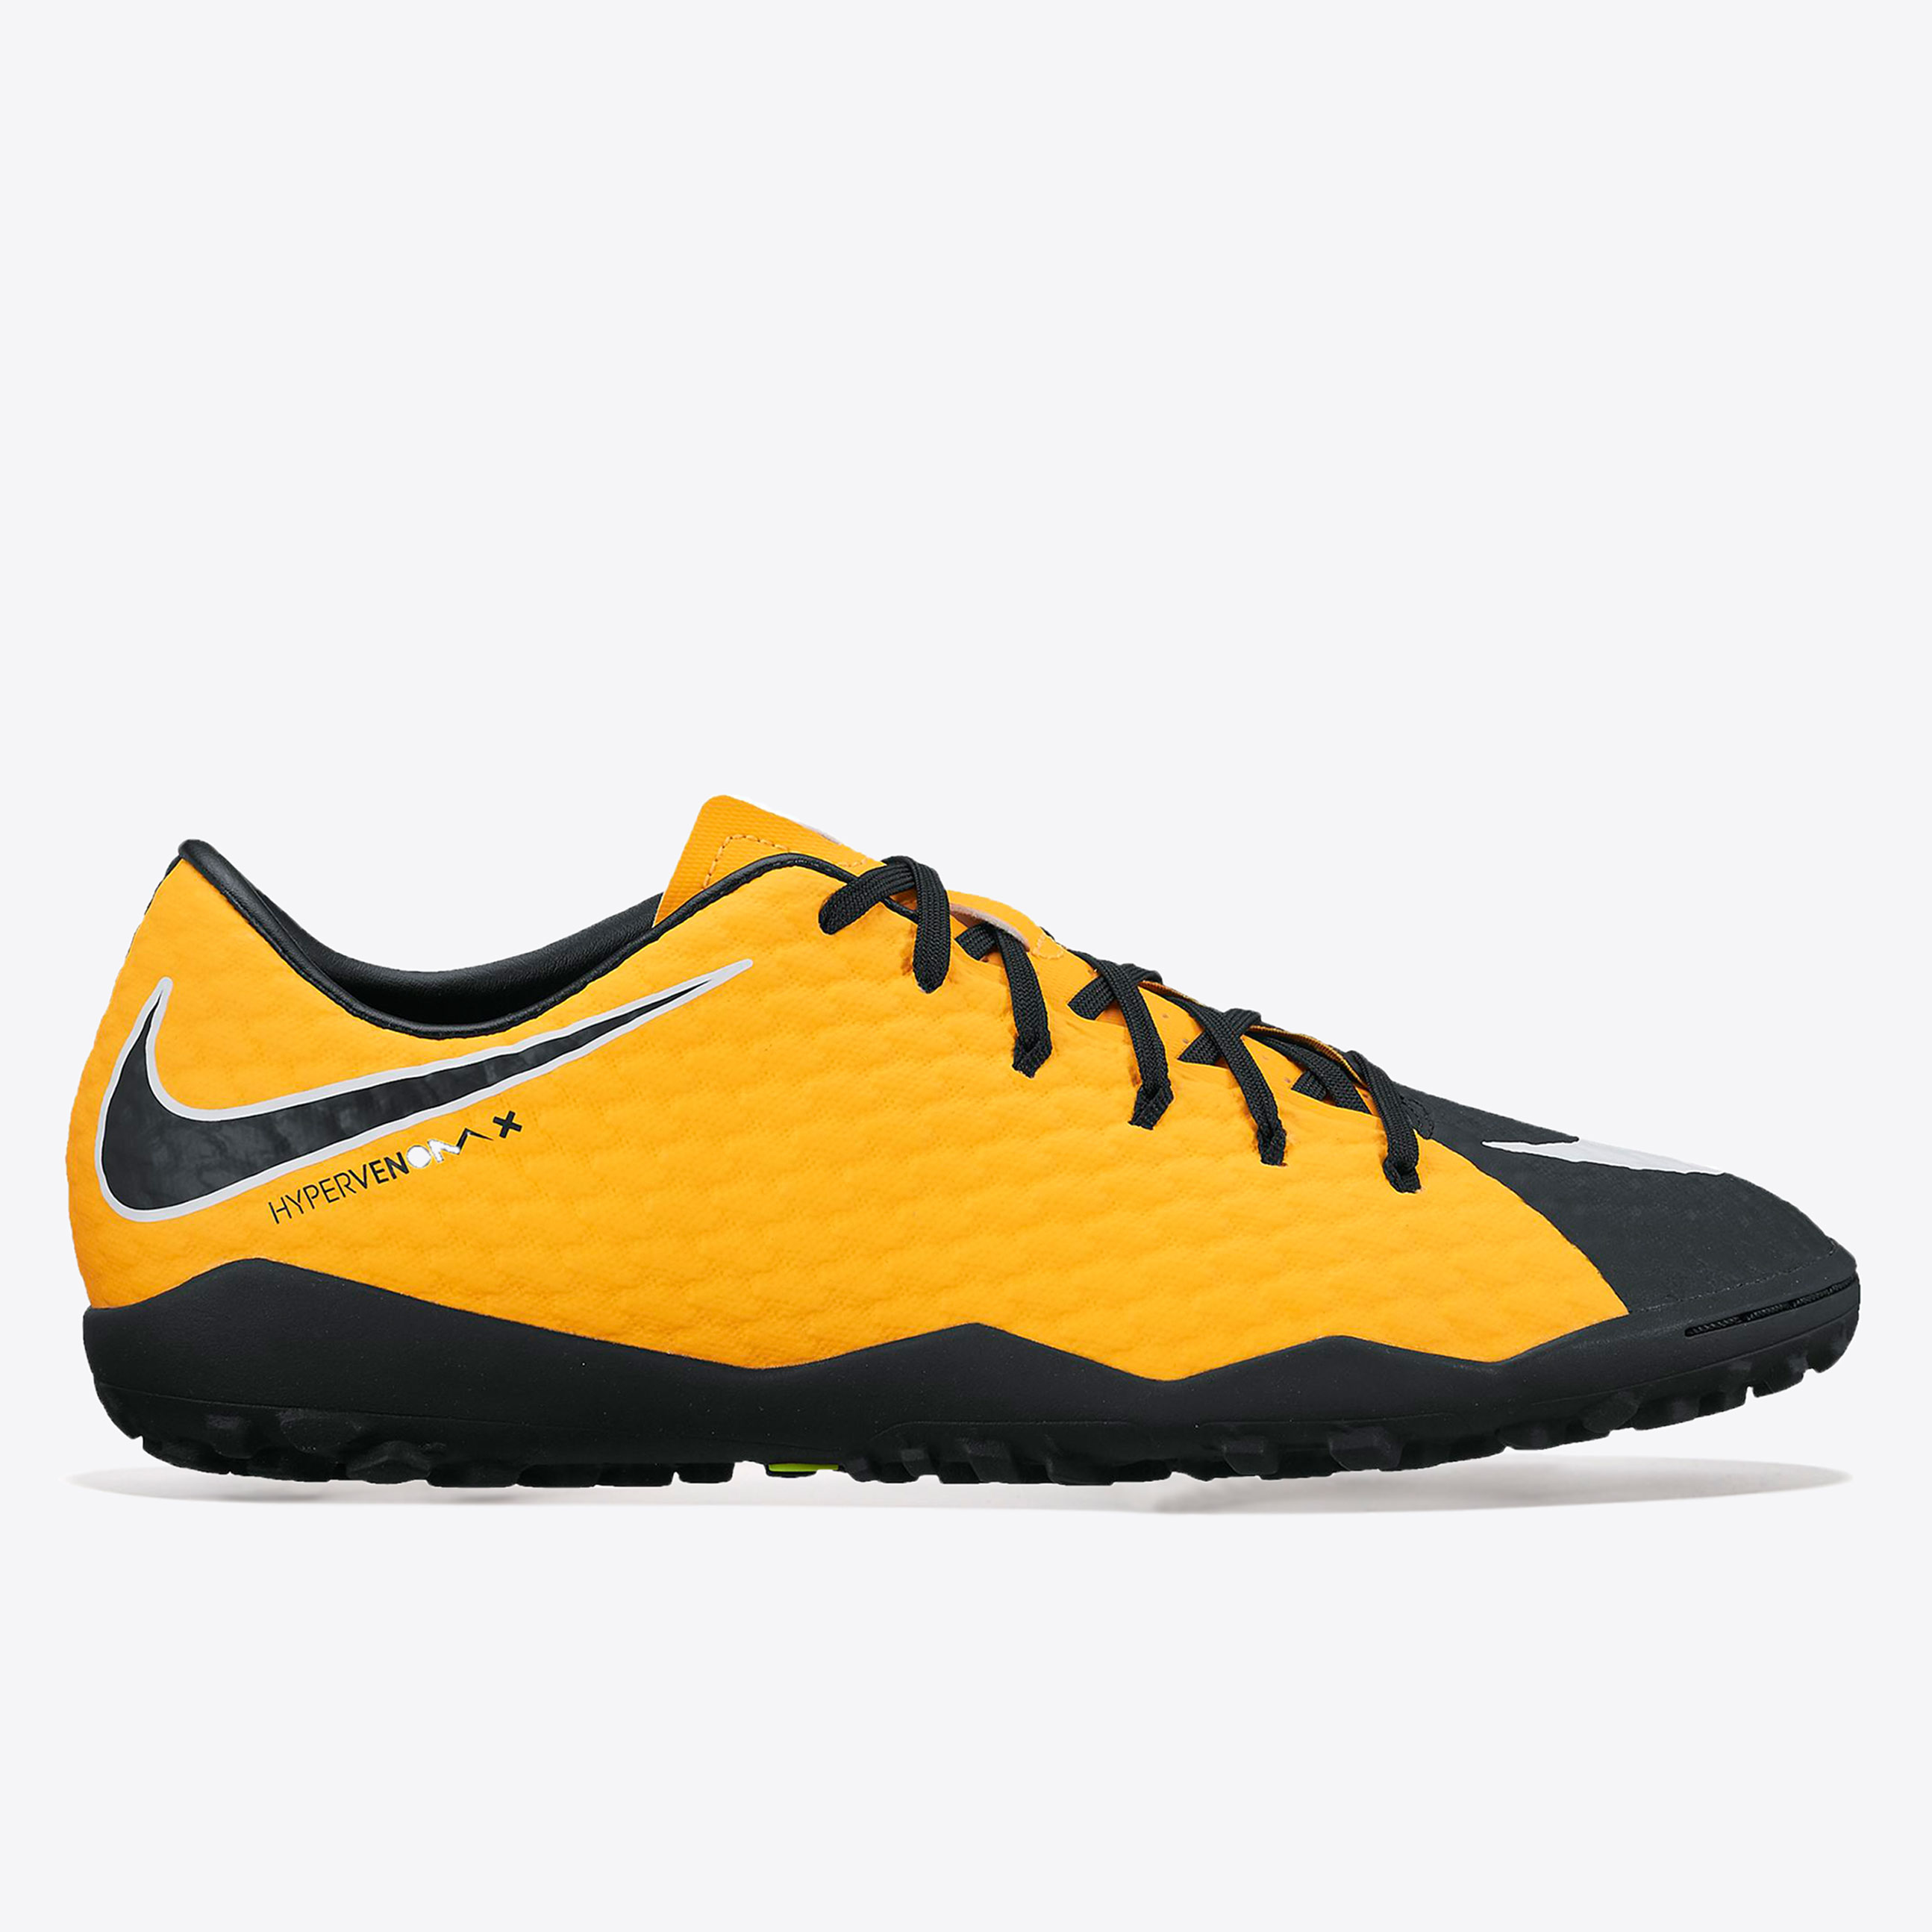 Nike Hypervenom Phelon III Astroturf Trainers - Laser Orange/Black/Bla